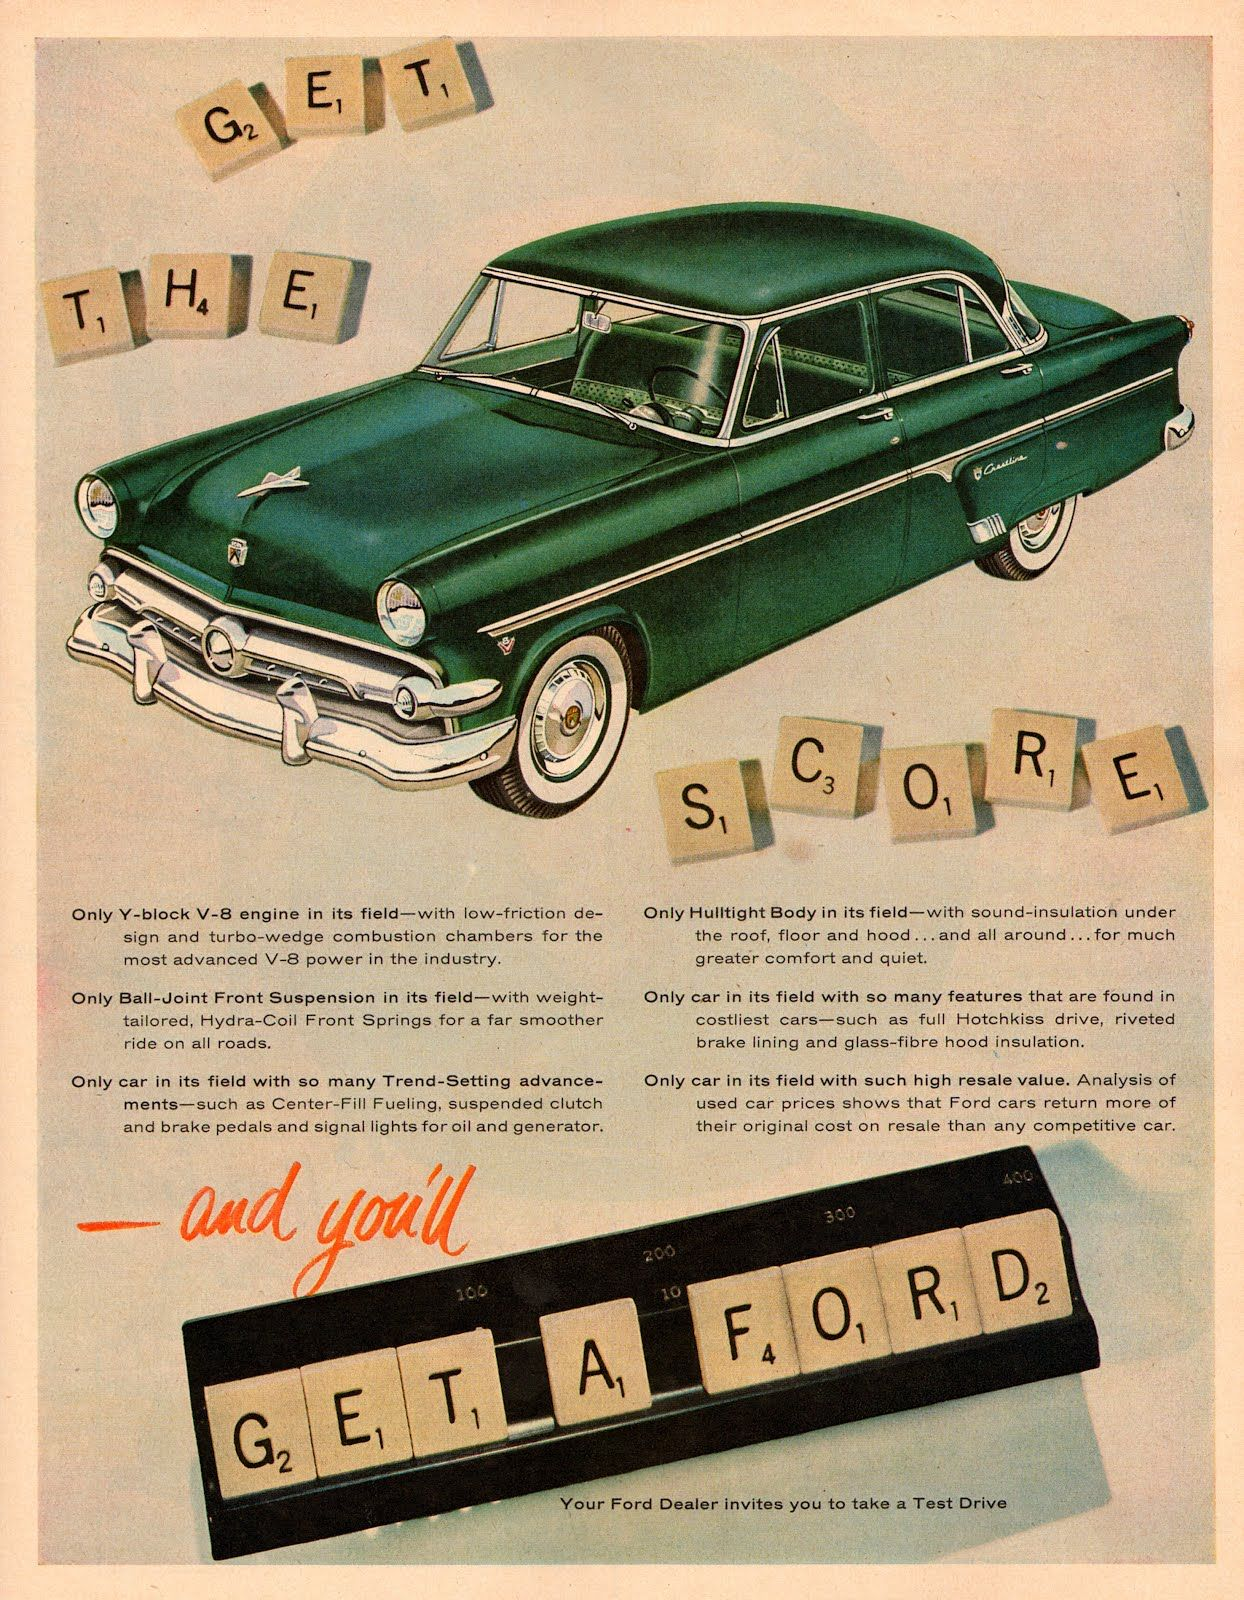 Other Merch & Memorabilia Ads Vintage 1954 Magazine Ad Ford Only Car In Its Field With Such High Resale Value Merchandise & Memorabilia